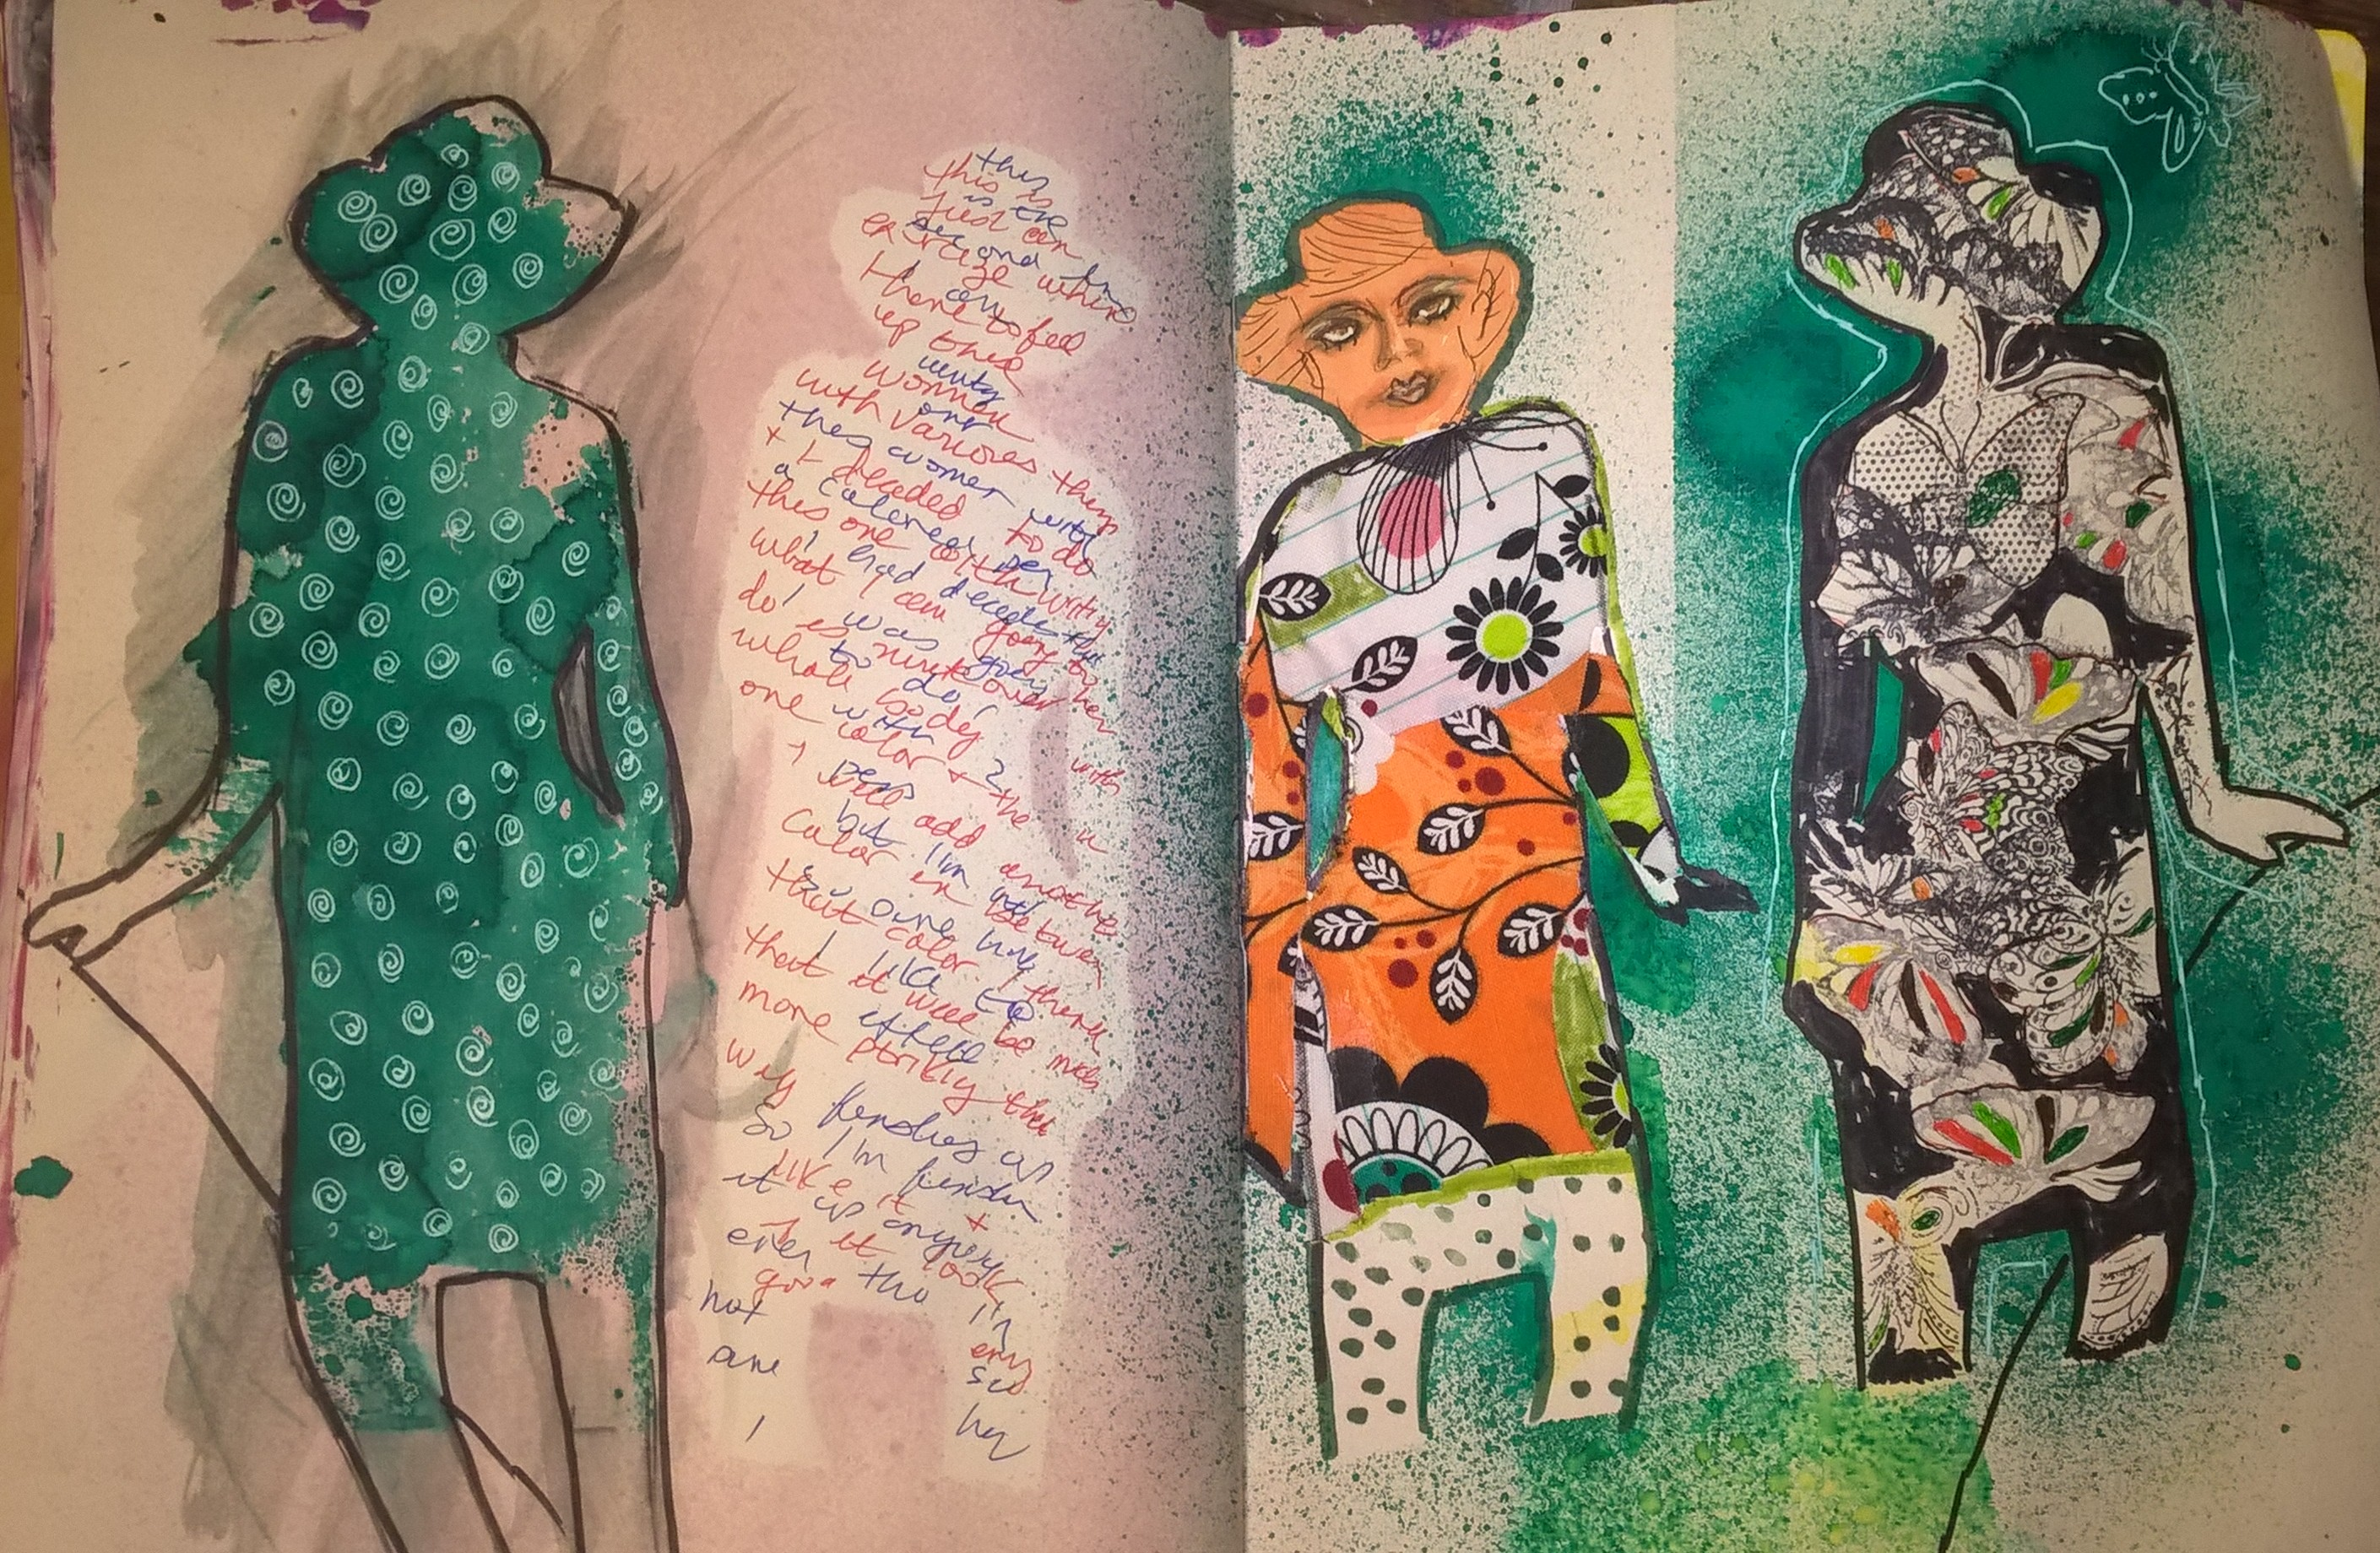 mixed media journal page with outlines of 4 women filled in with various media